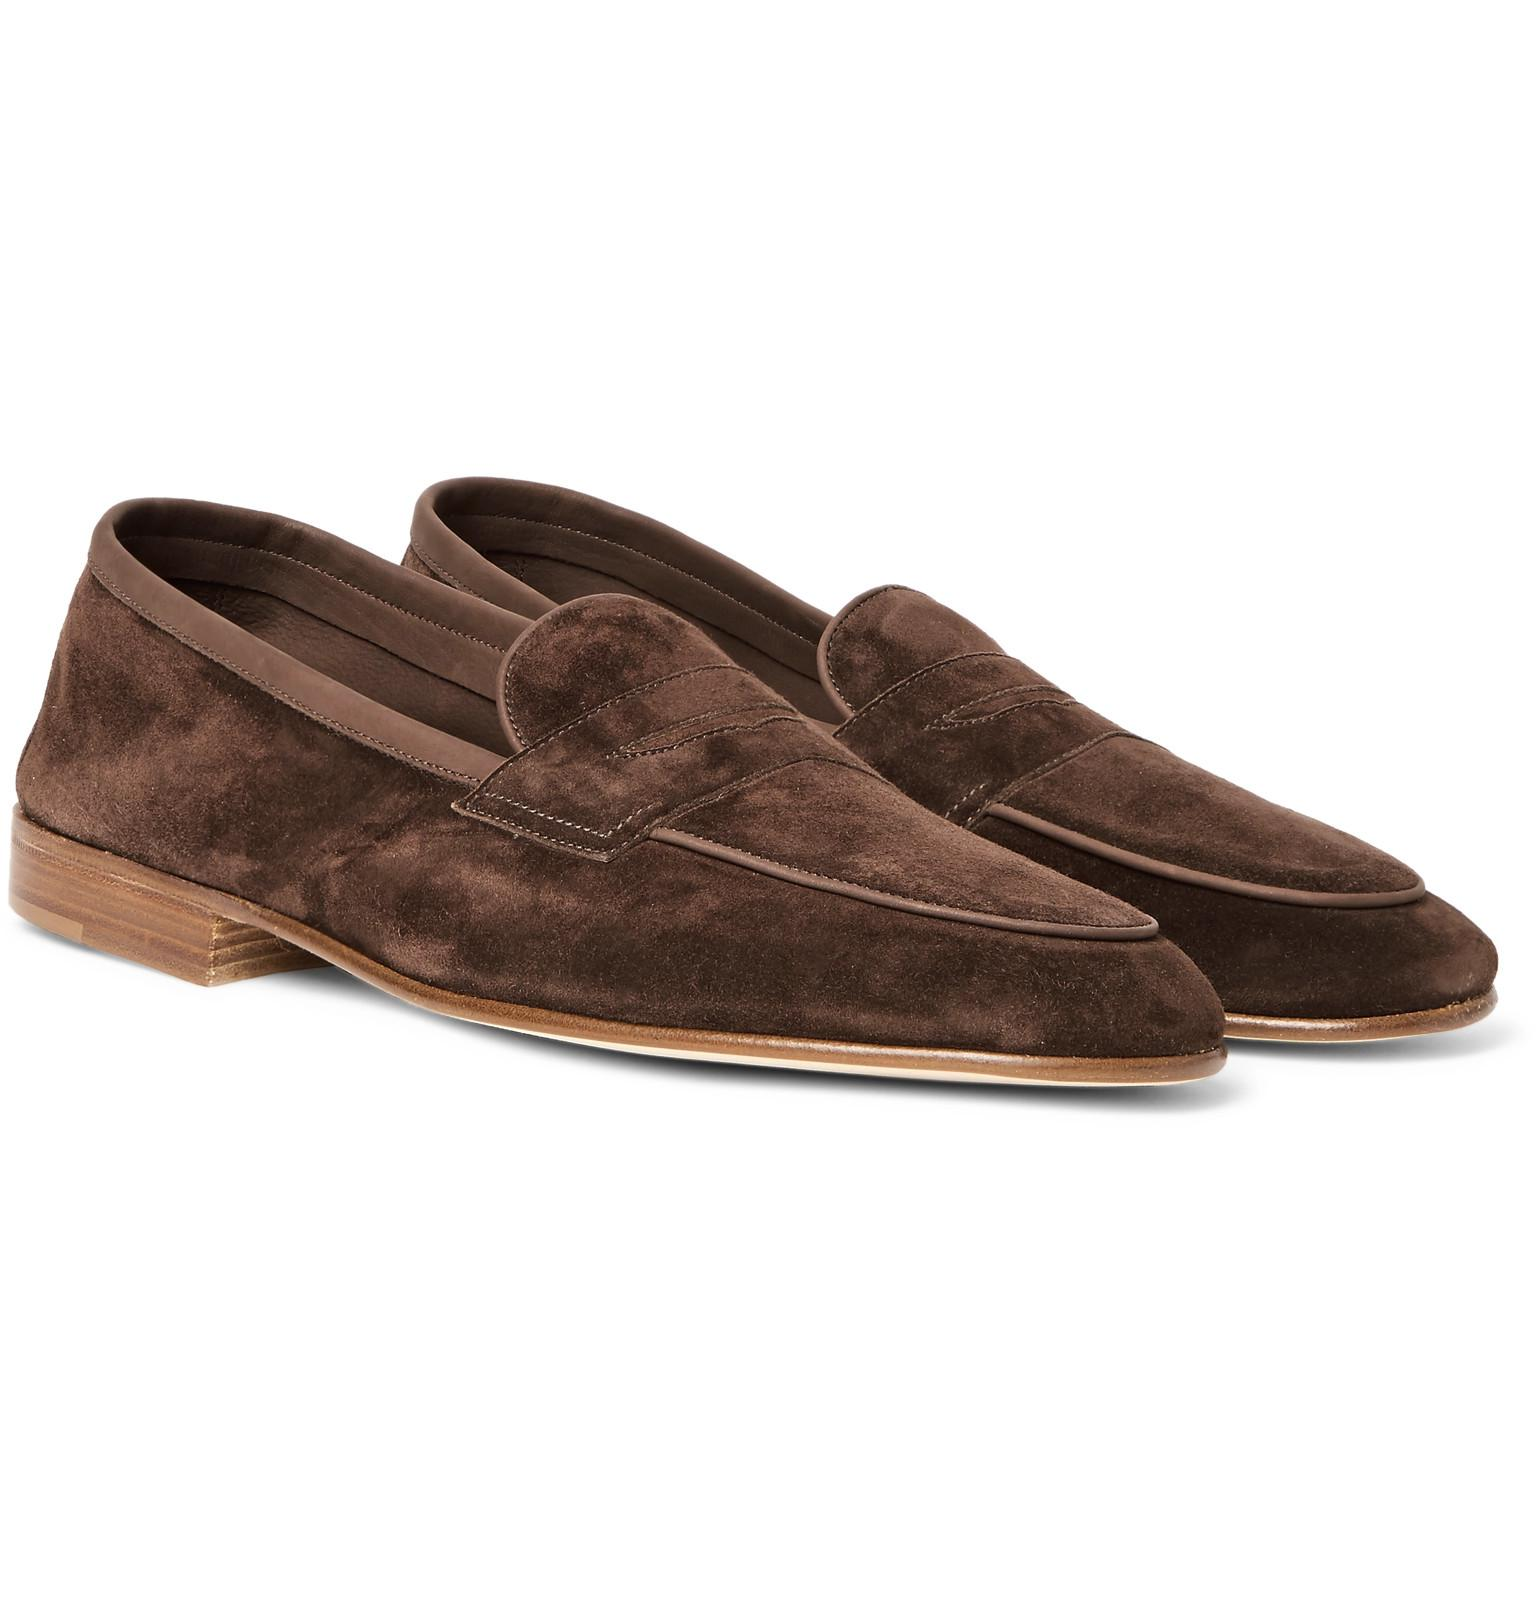 e34f2537fa2 Edward Green Polperro Nubuck-trimmed Suede Penny Loafers in Brown ...